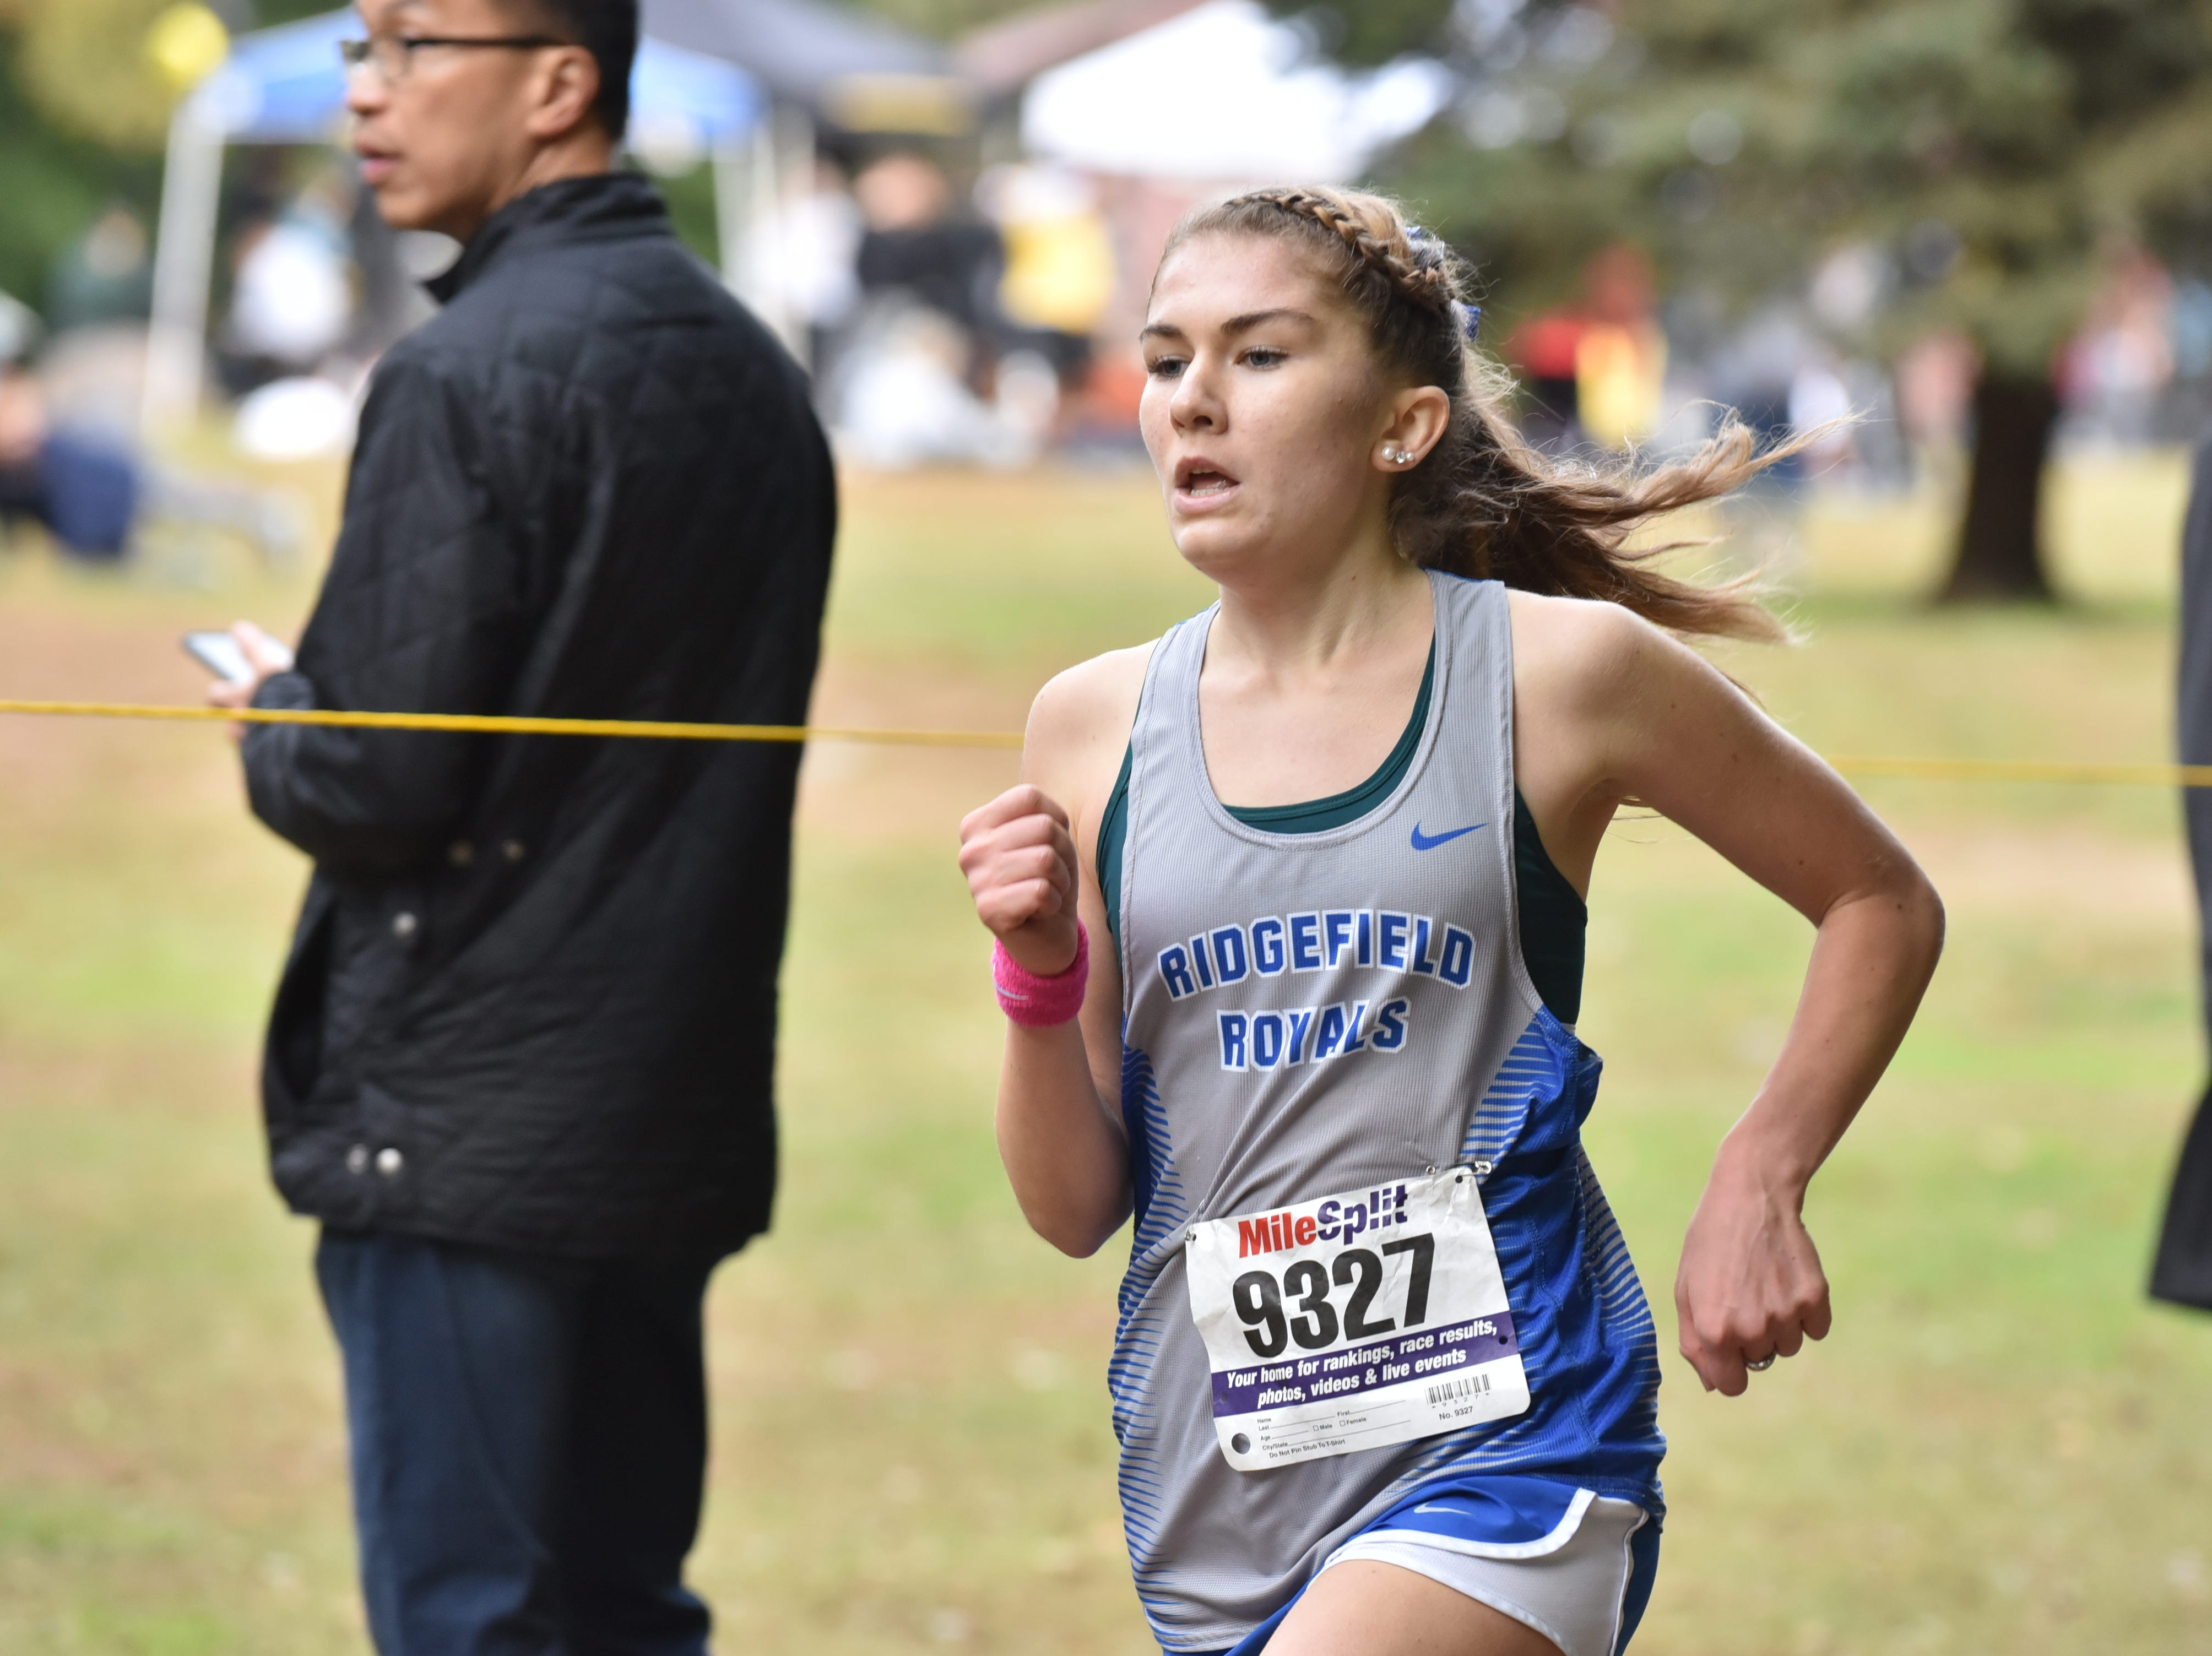 Marry Griffin of Ridgefield wins 2nd in Group D at the Bergen County Cross Country Championships.